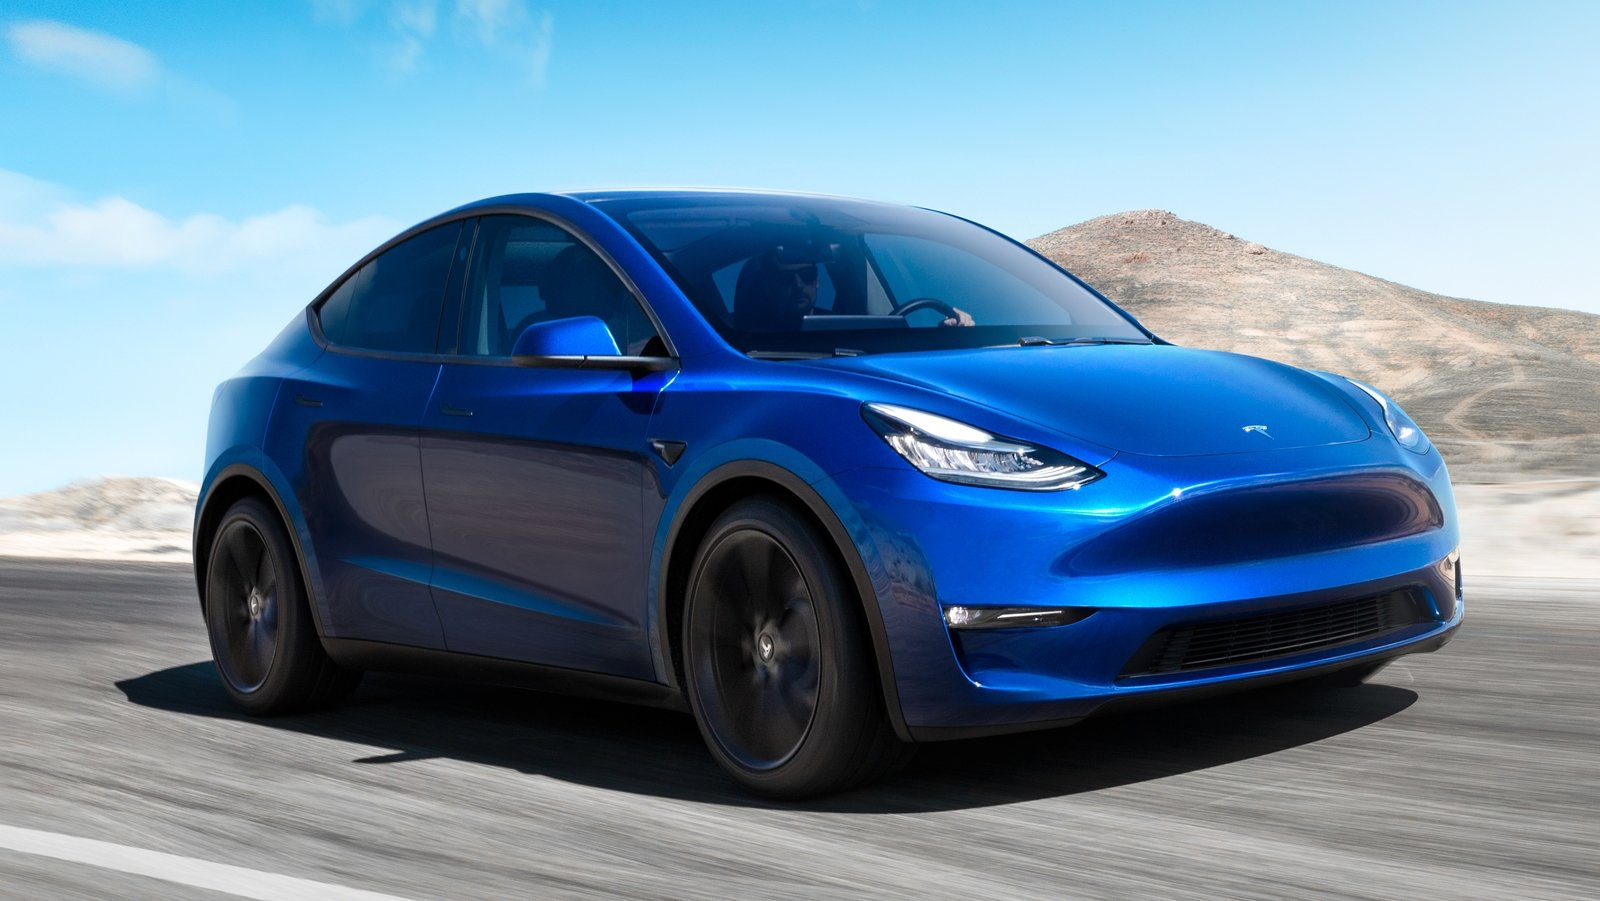 Car Manufacturers With I 2020 Tesla Model Y Quirks And Features Pictures Photos